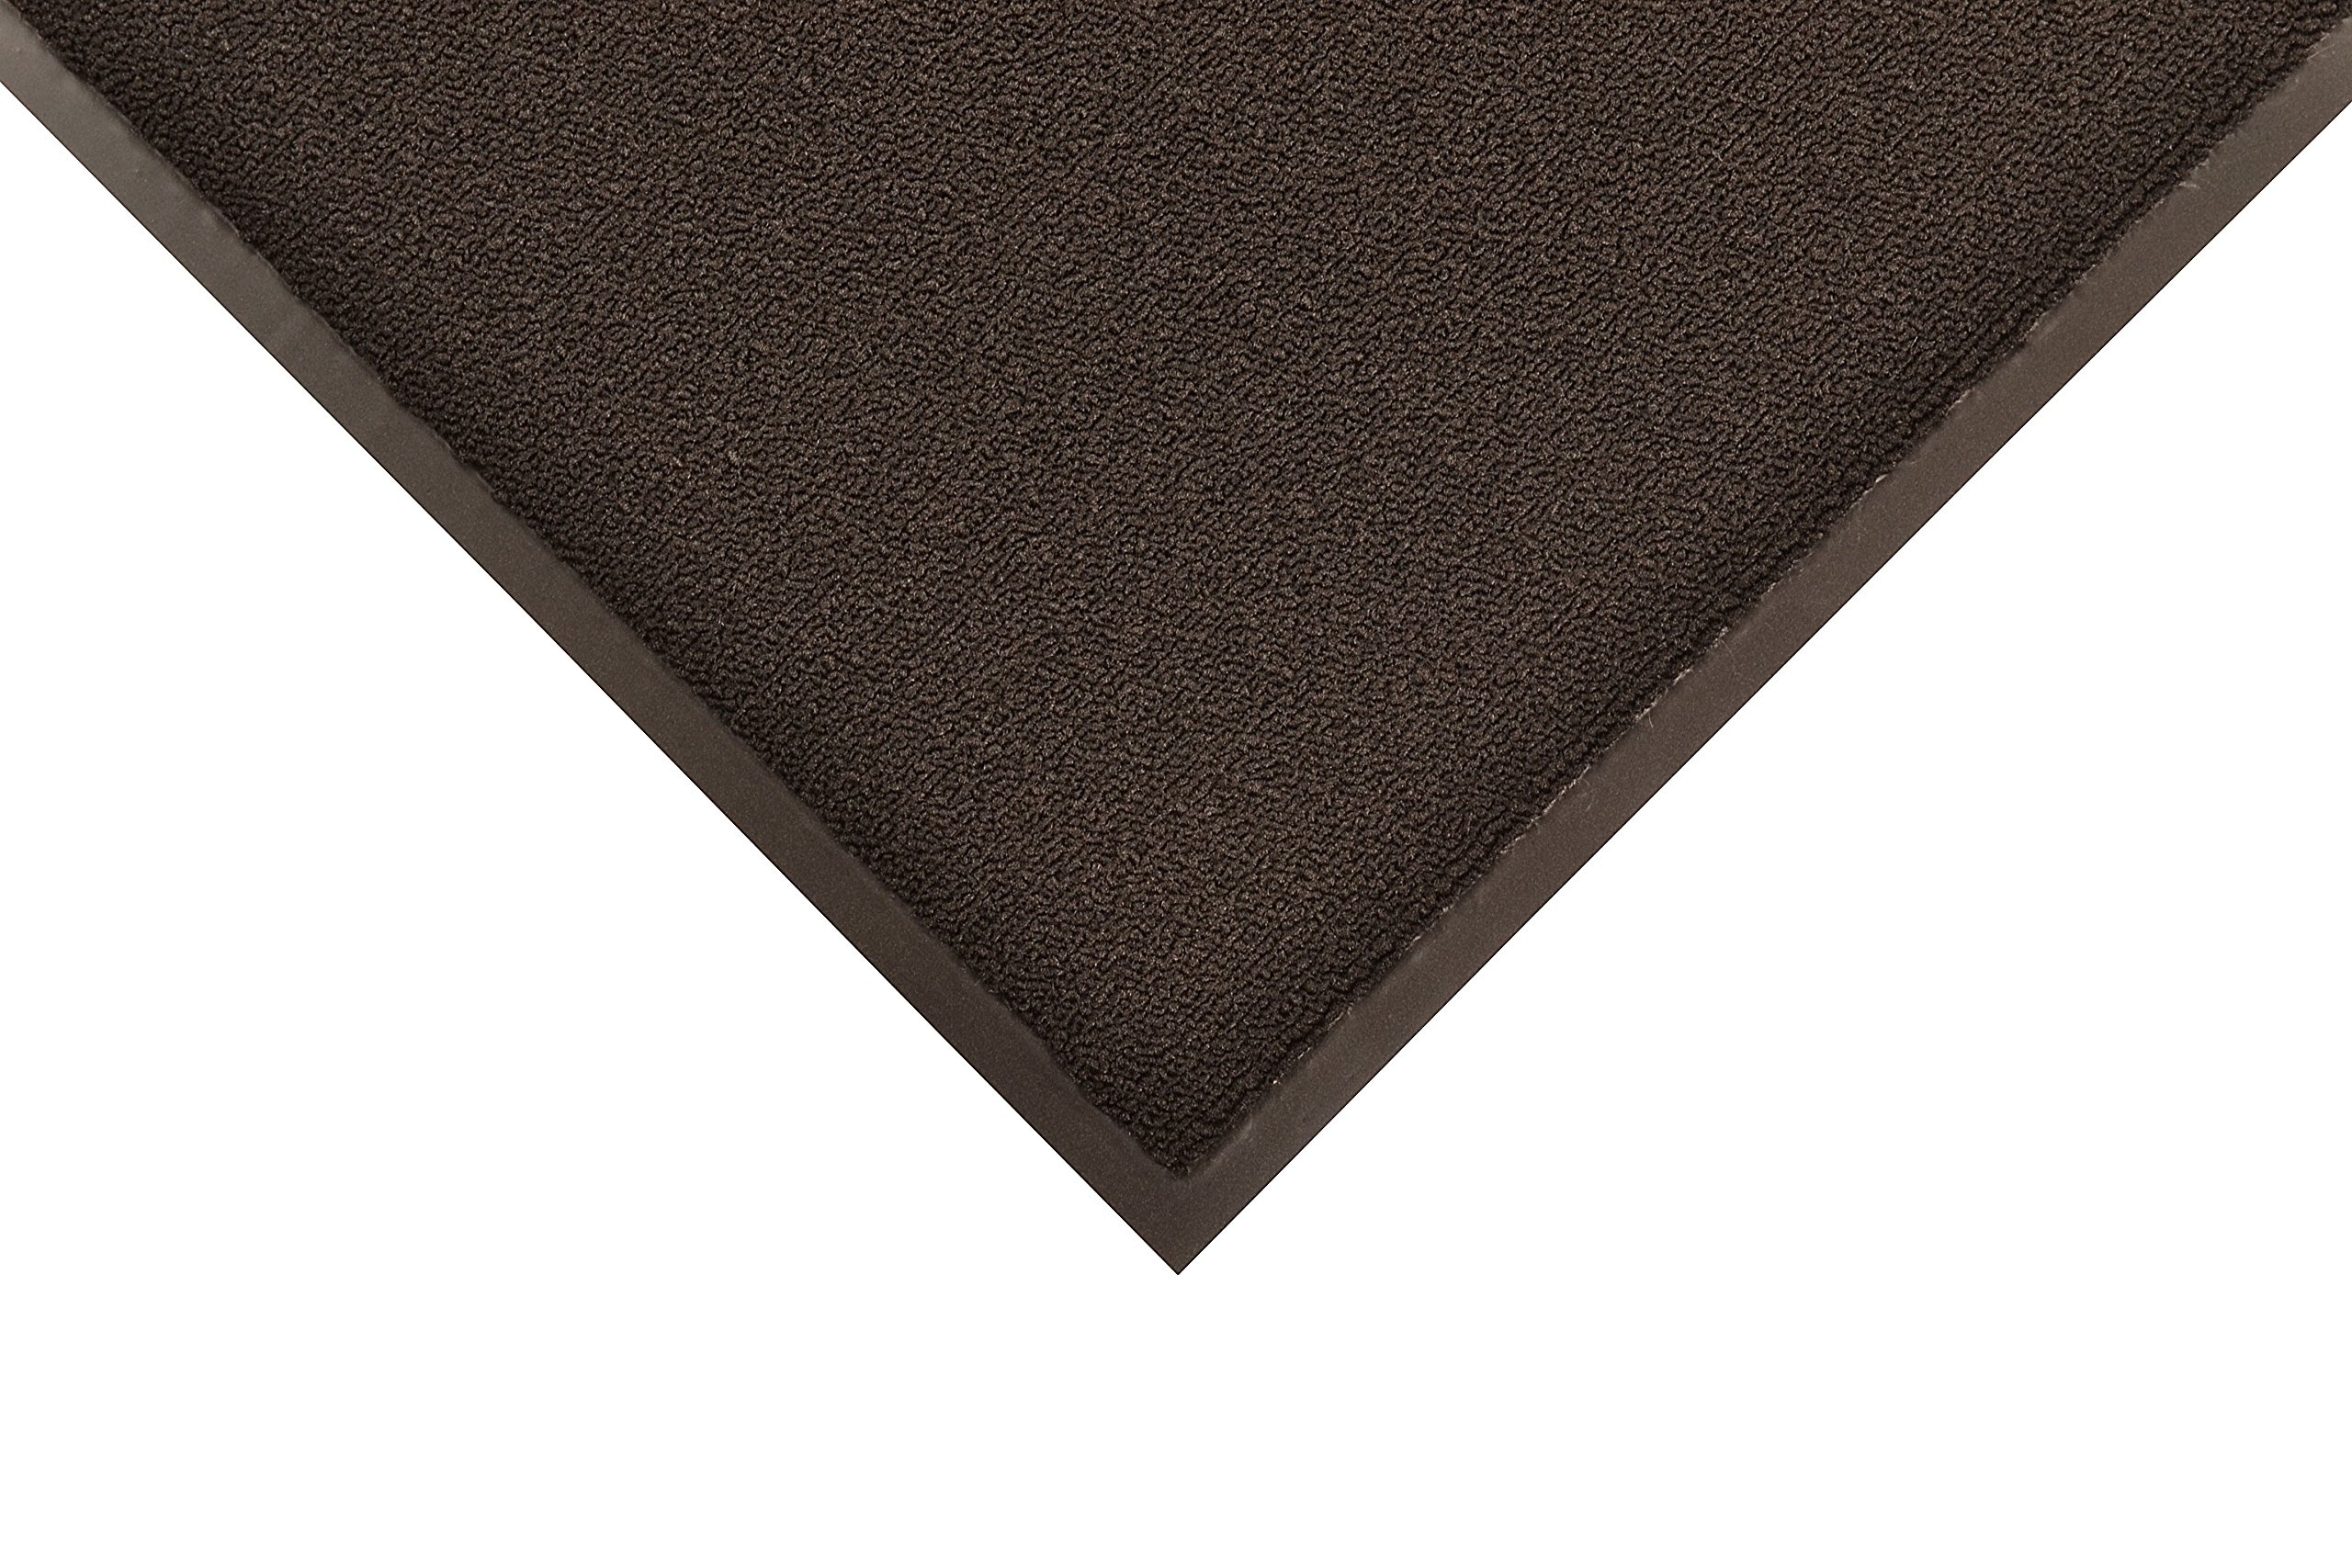 Notrax 141 Ovation Entrance Mat, for Main Entranceways and Heavy Traffic Areas, 2' Width x 3' Length x 5/16'' Thickness, Black